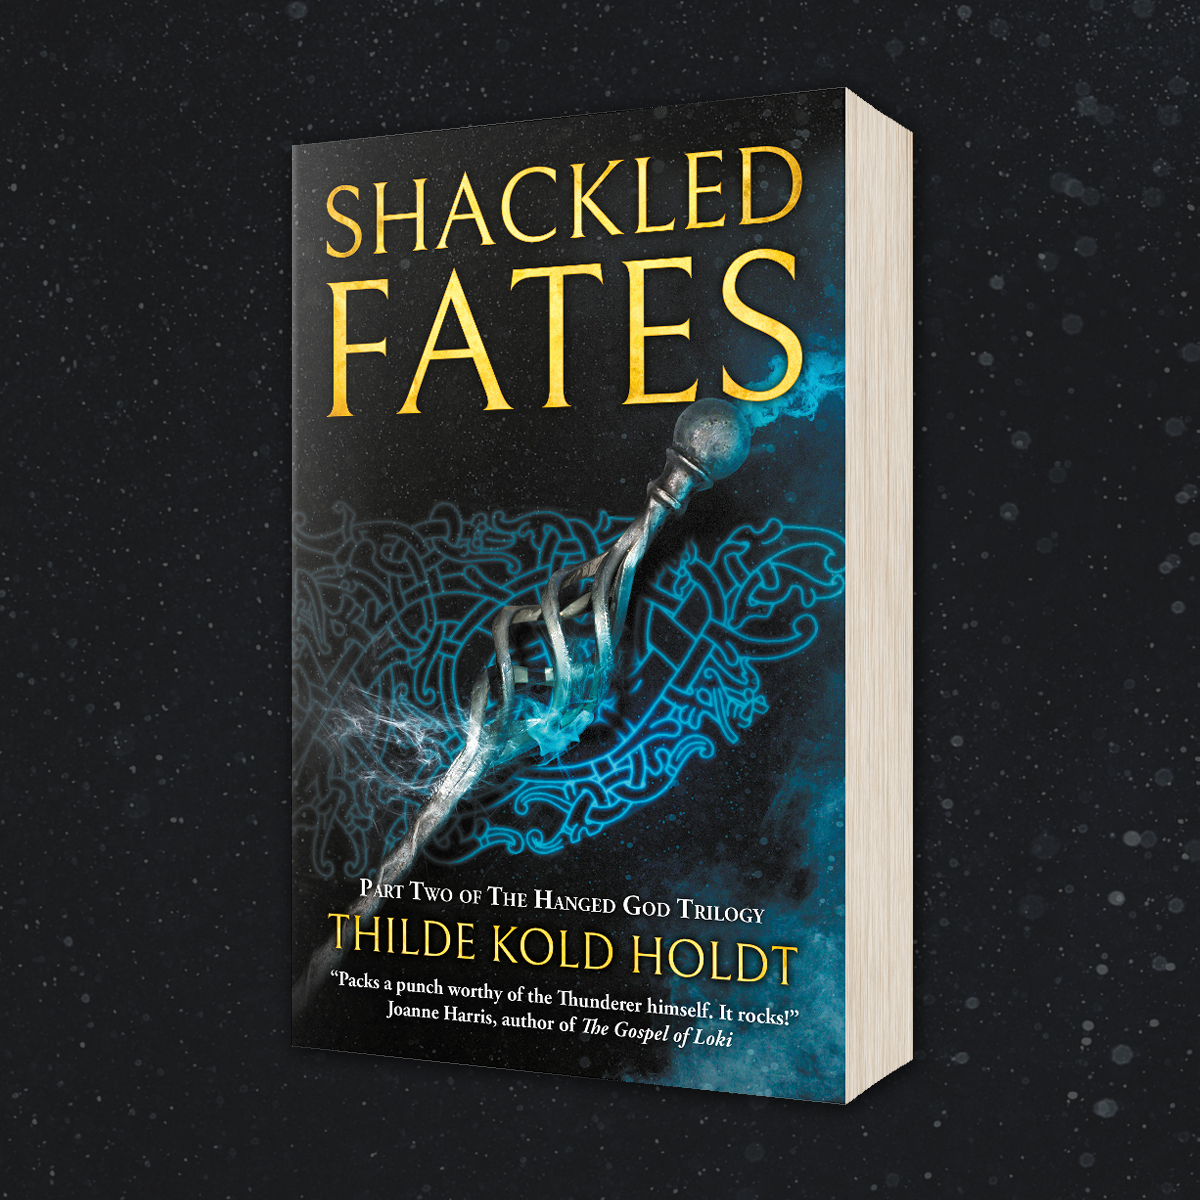 OUT NOW: Shackled Fates by Thilde Kold Holdt!